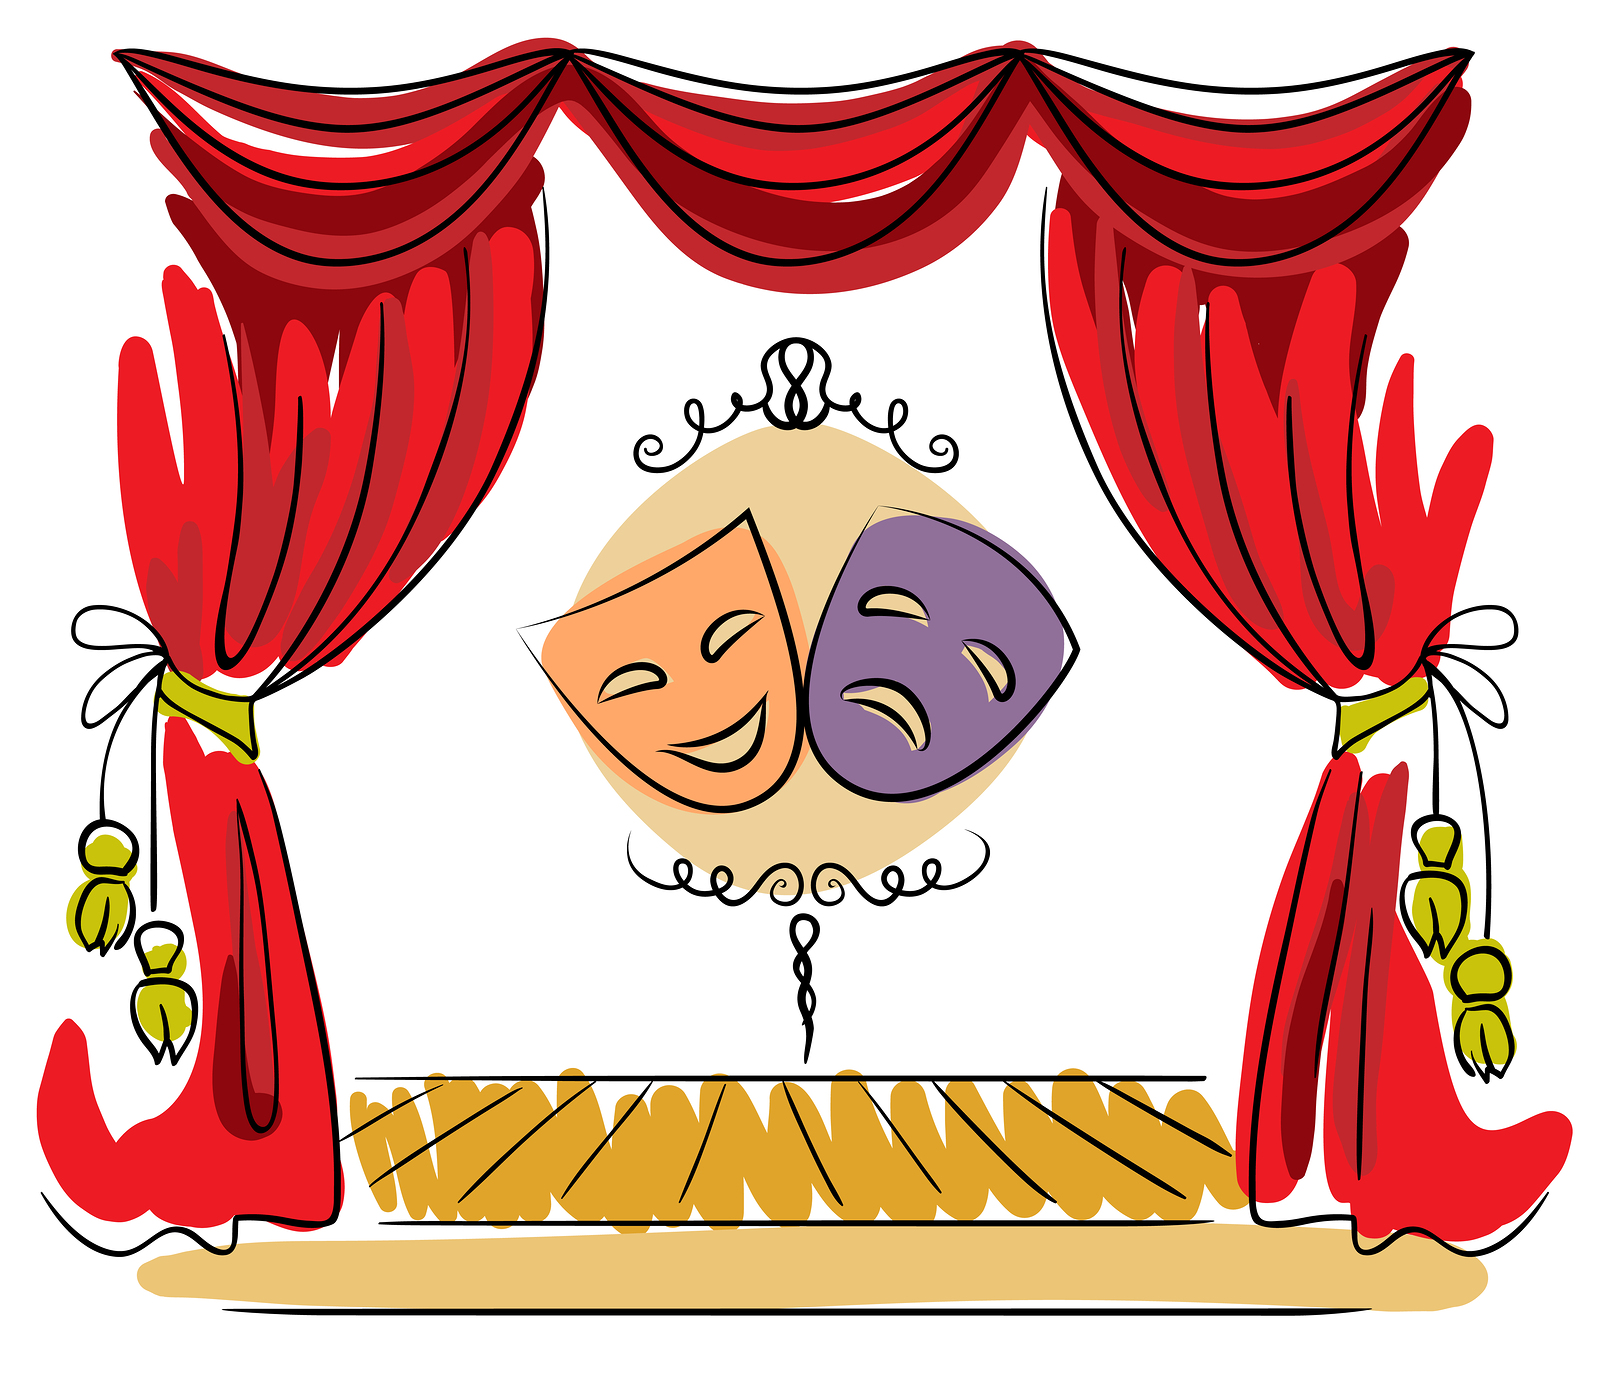 Theatre clipart theater play Drama Others Clipart Cliparts Stage